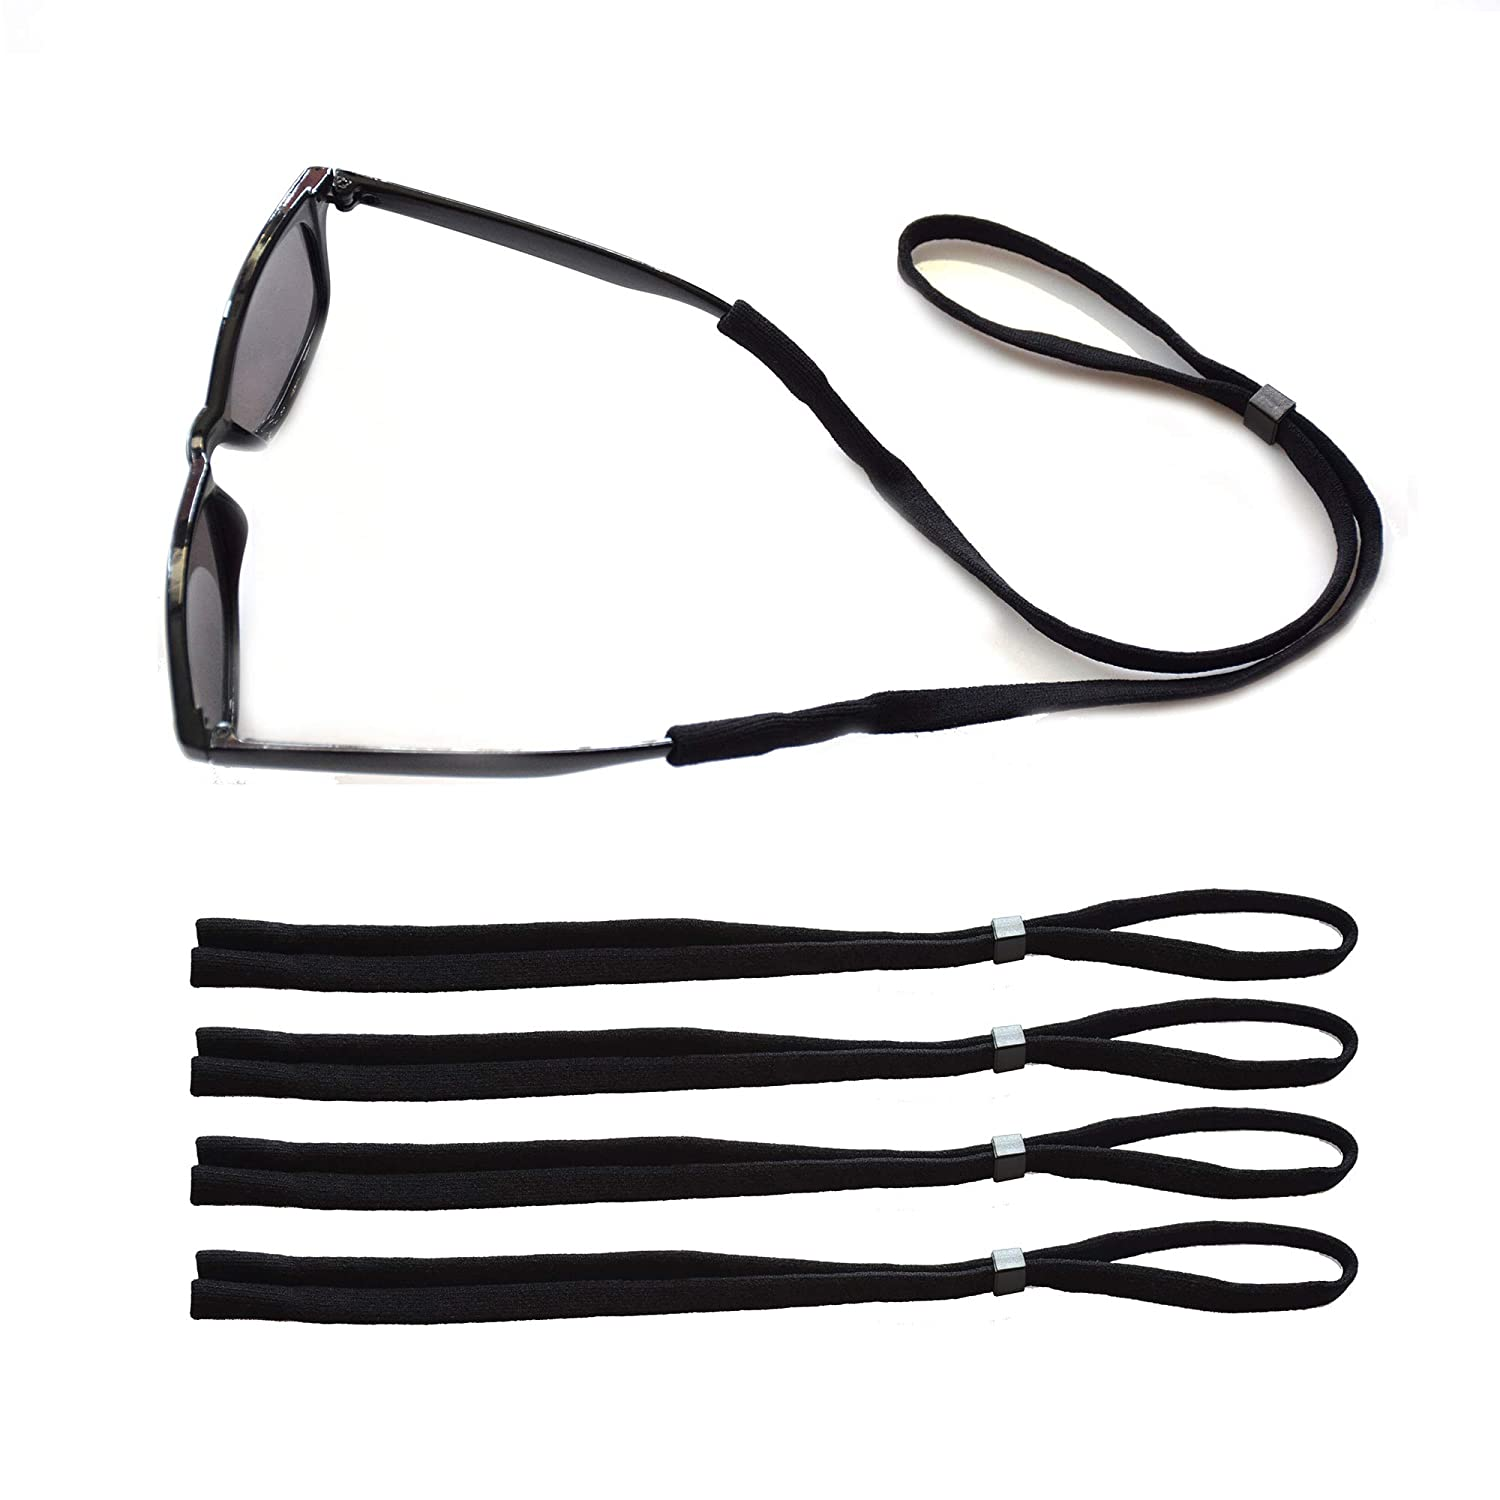 JUSLINK Adjustable Cotton Eyewear Retainer, Sunglasses strap,Men Glasses Strap,Floating Sunglass Straps,Set of 4 (Black)